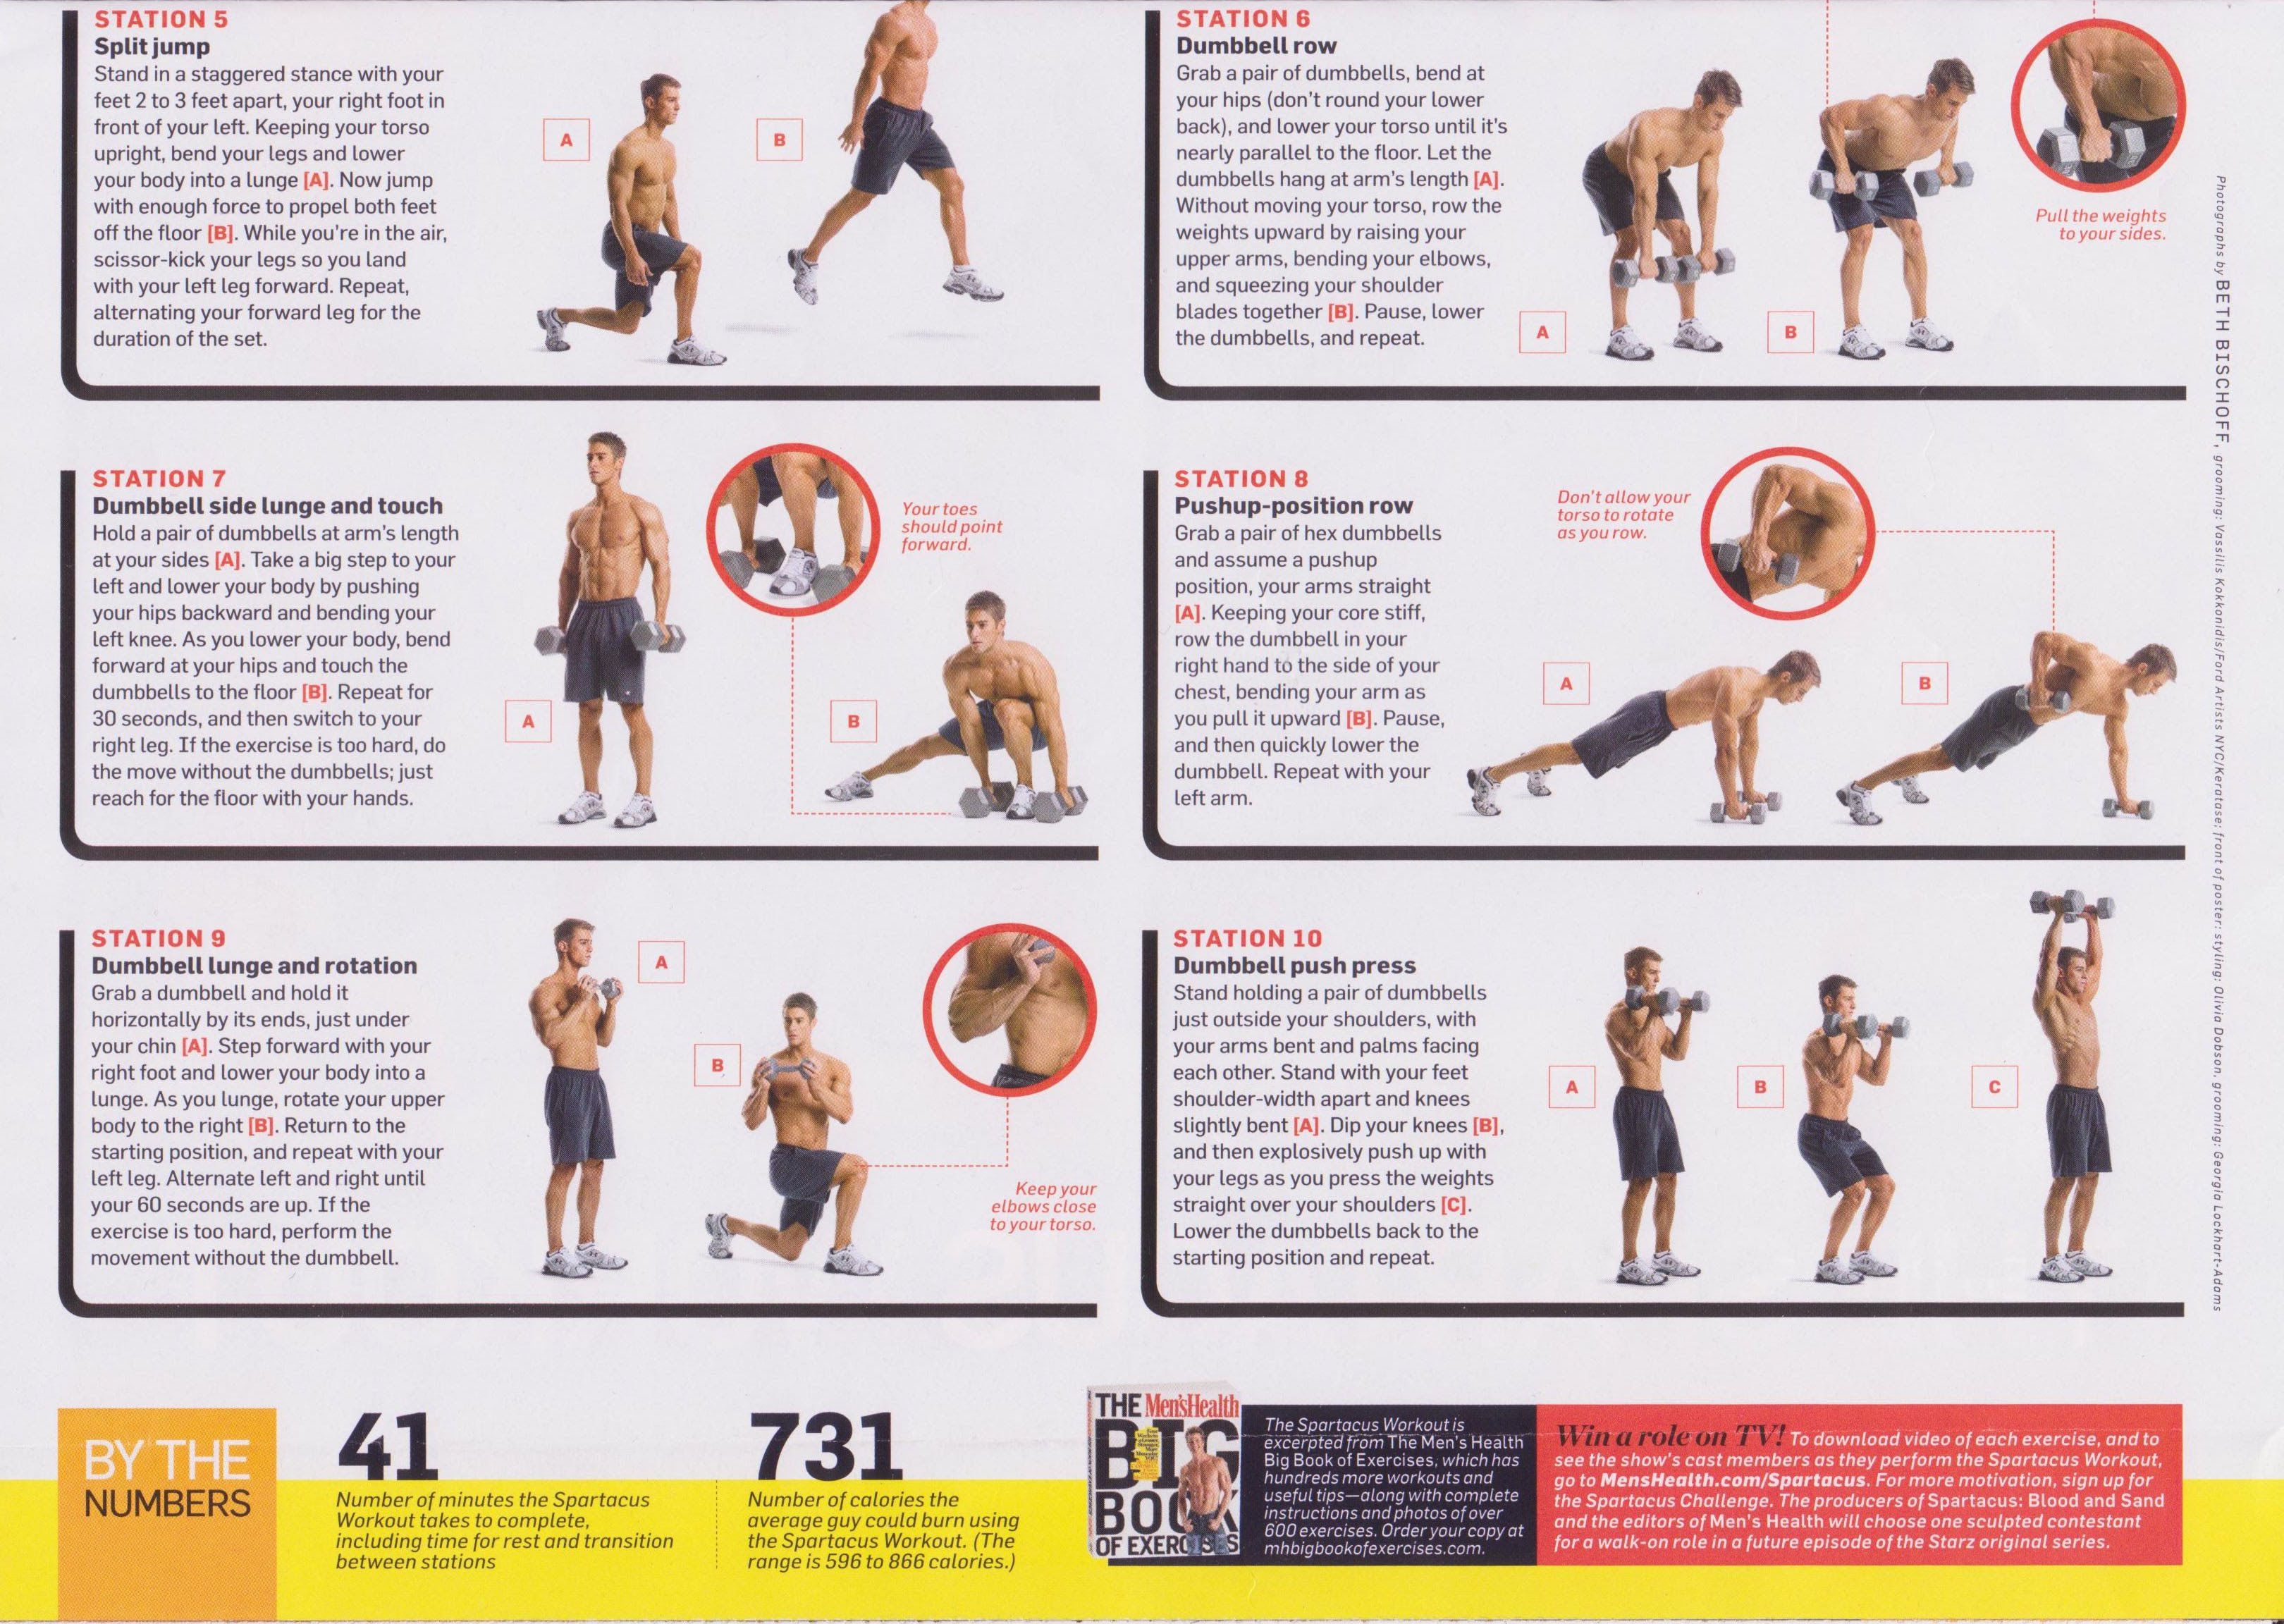 photograph about Spartacus Workout Printable titled spartacus 3.0 training pdf